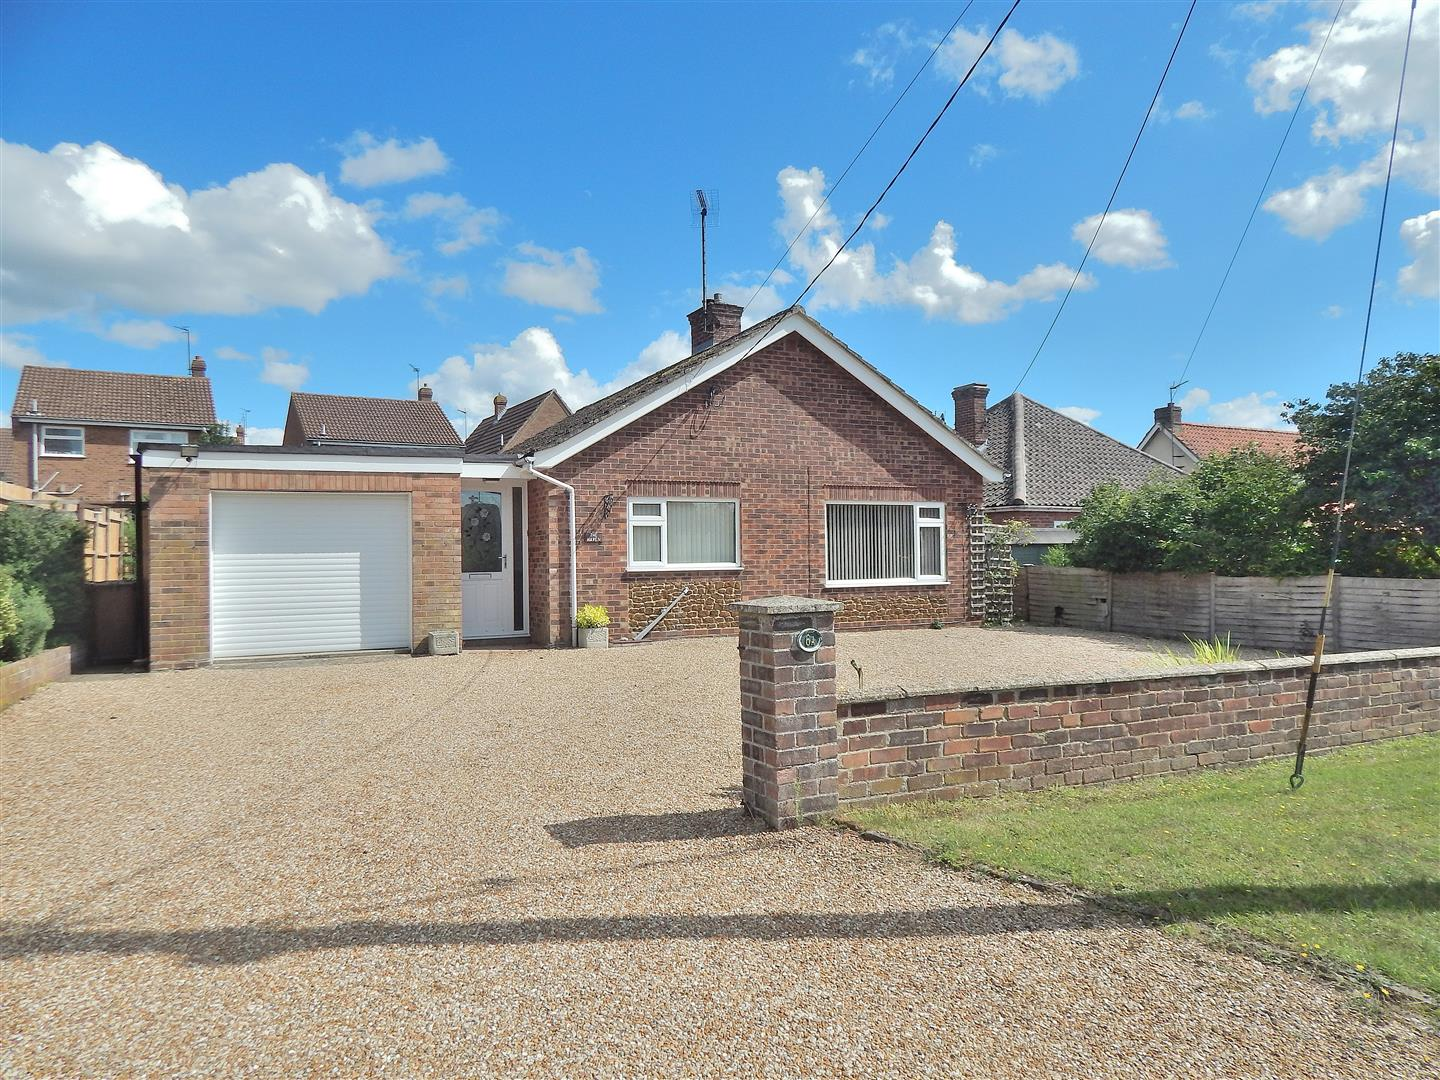 3 bed detached bungalow for sale in 6a Fern Hill, King's Lynn 0